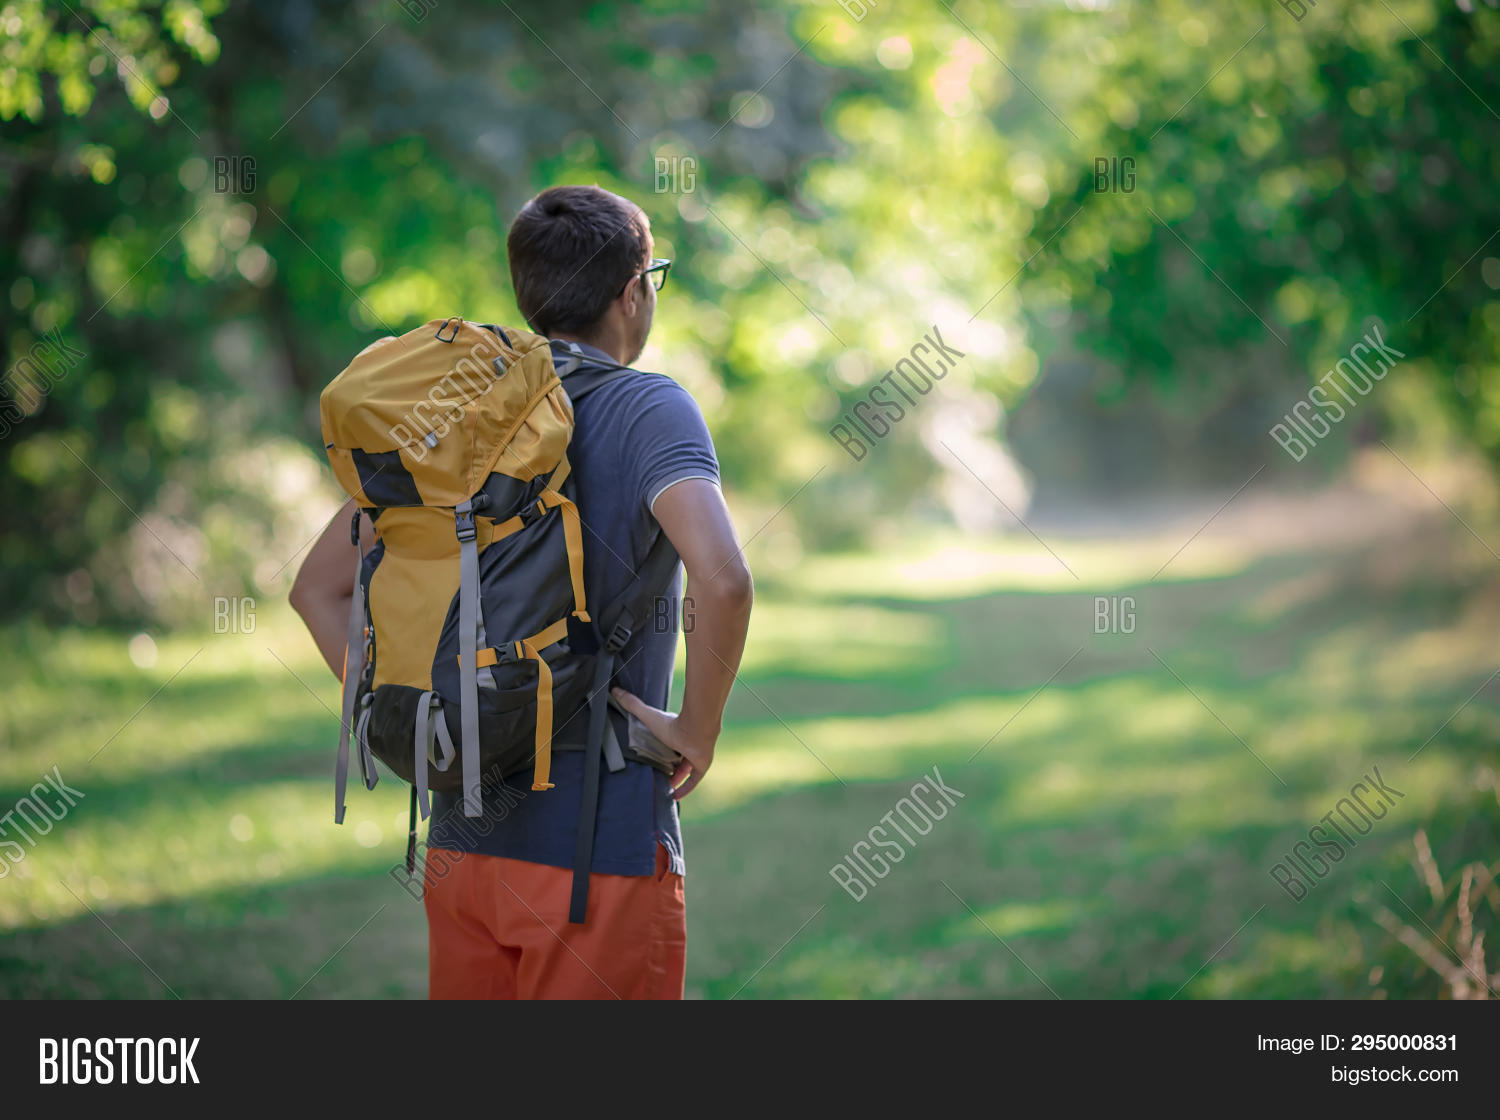 a1a65f05a6e8 Young Smiling Backpack Image & Photo (Free Trial) | Bigstock